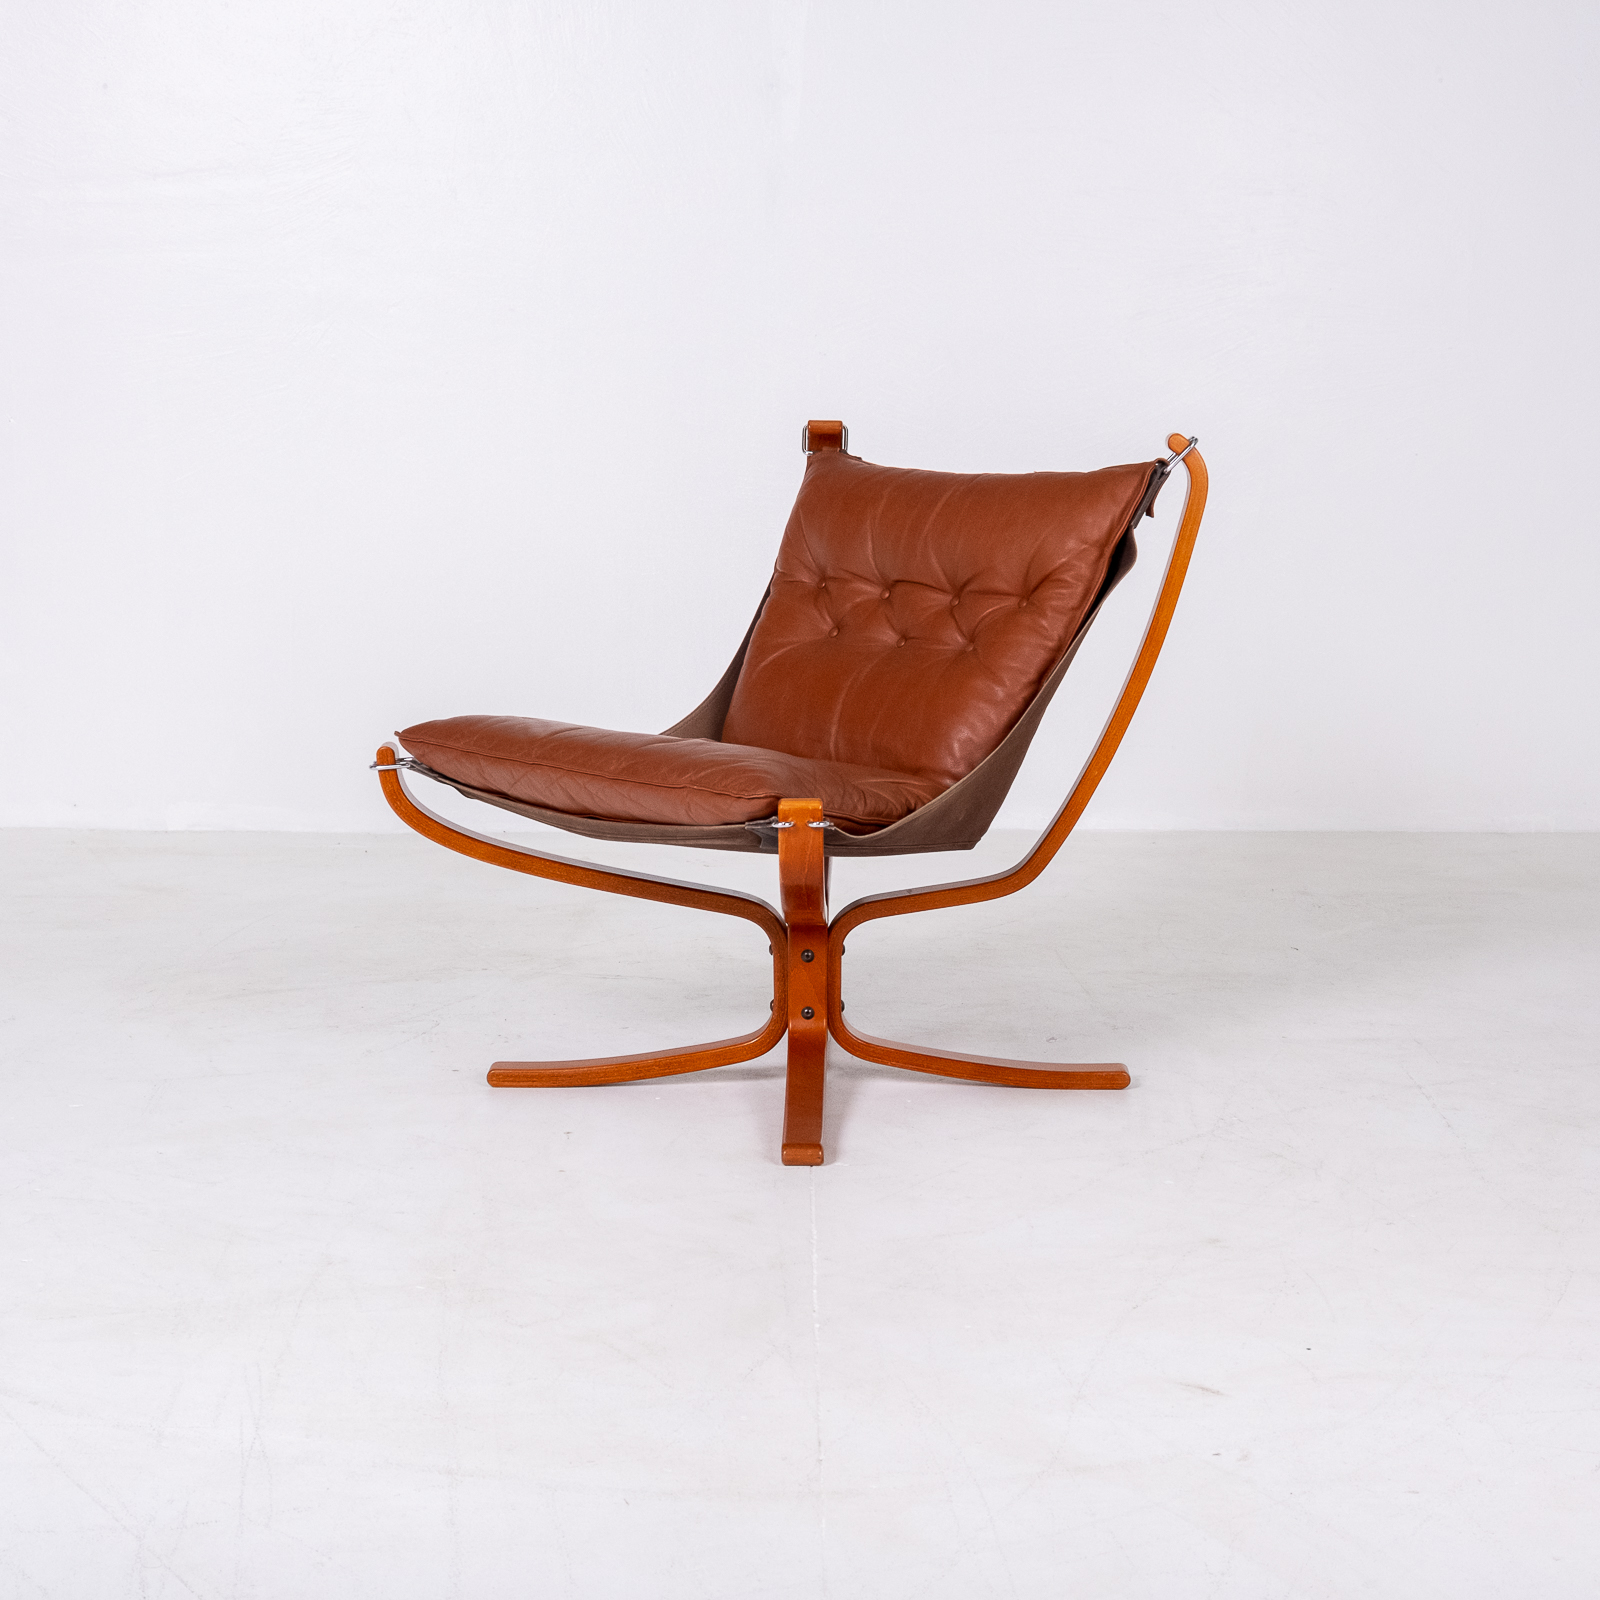 Low Back Falcon Armchair In Tan Leather By Sigurd Ressell For Vatne Mobler, 1971, Norway 05